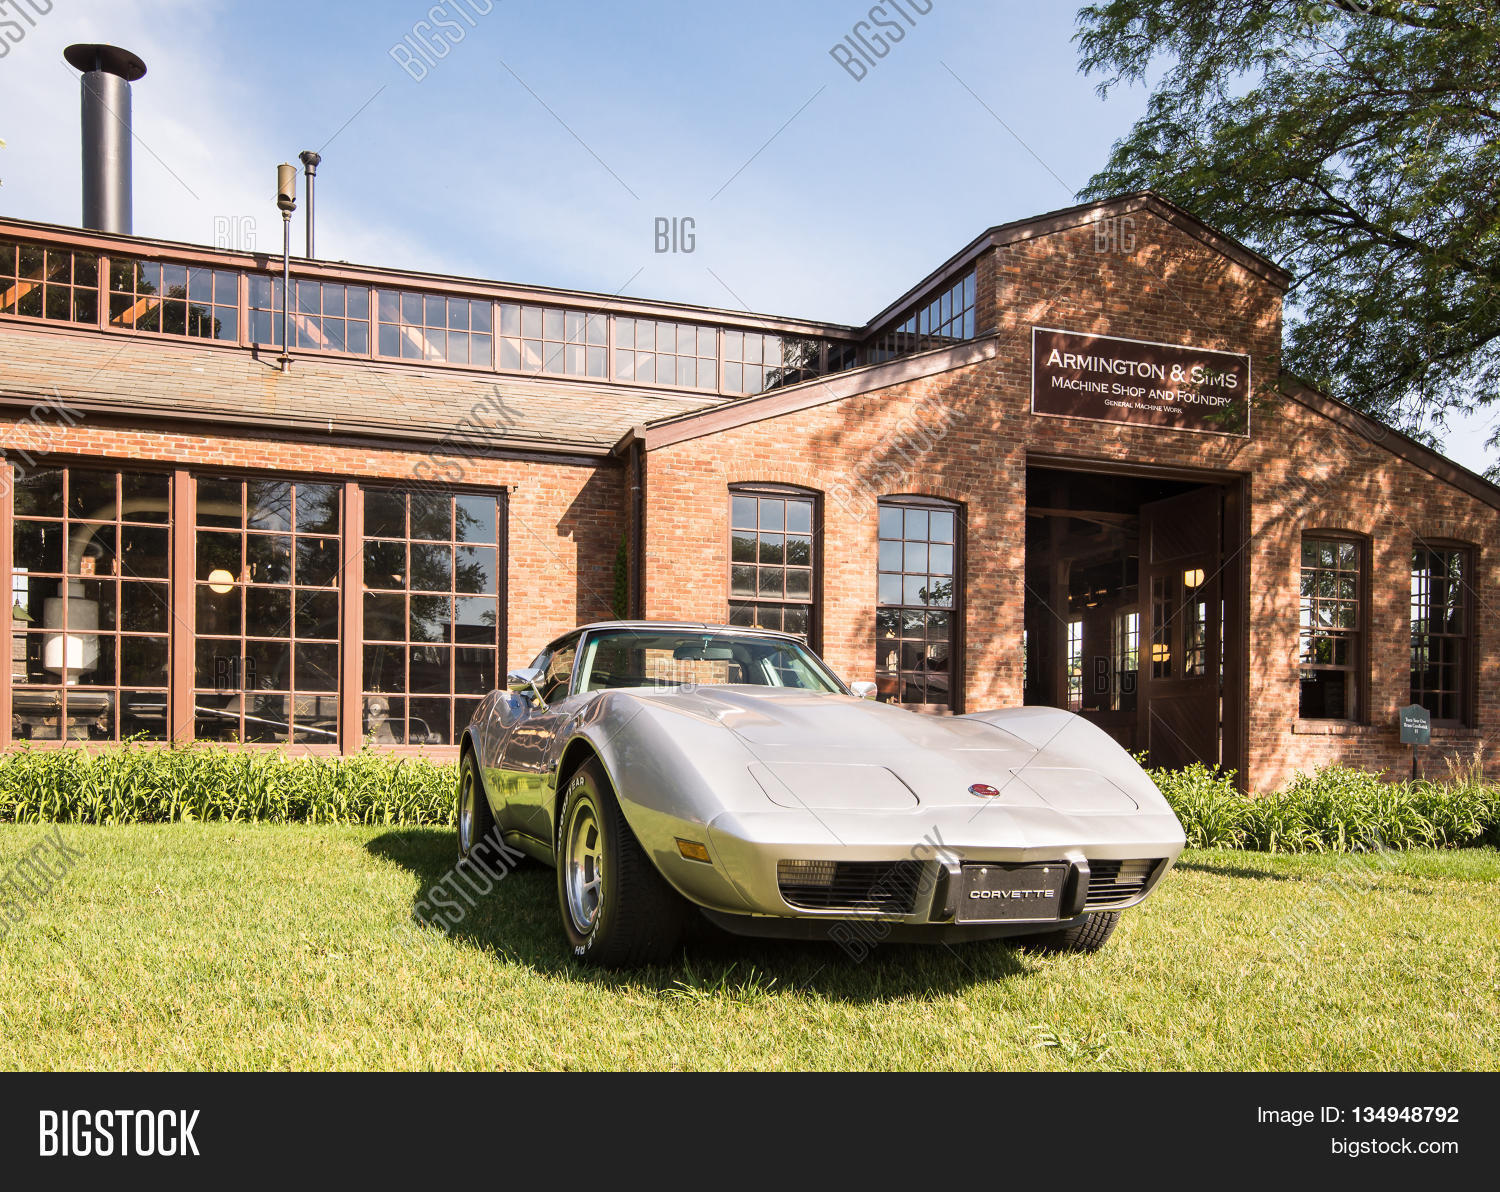 DEARBORN MIUSA JUNE Image Photo Free Trial Bigstock - Henry ford car show